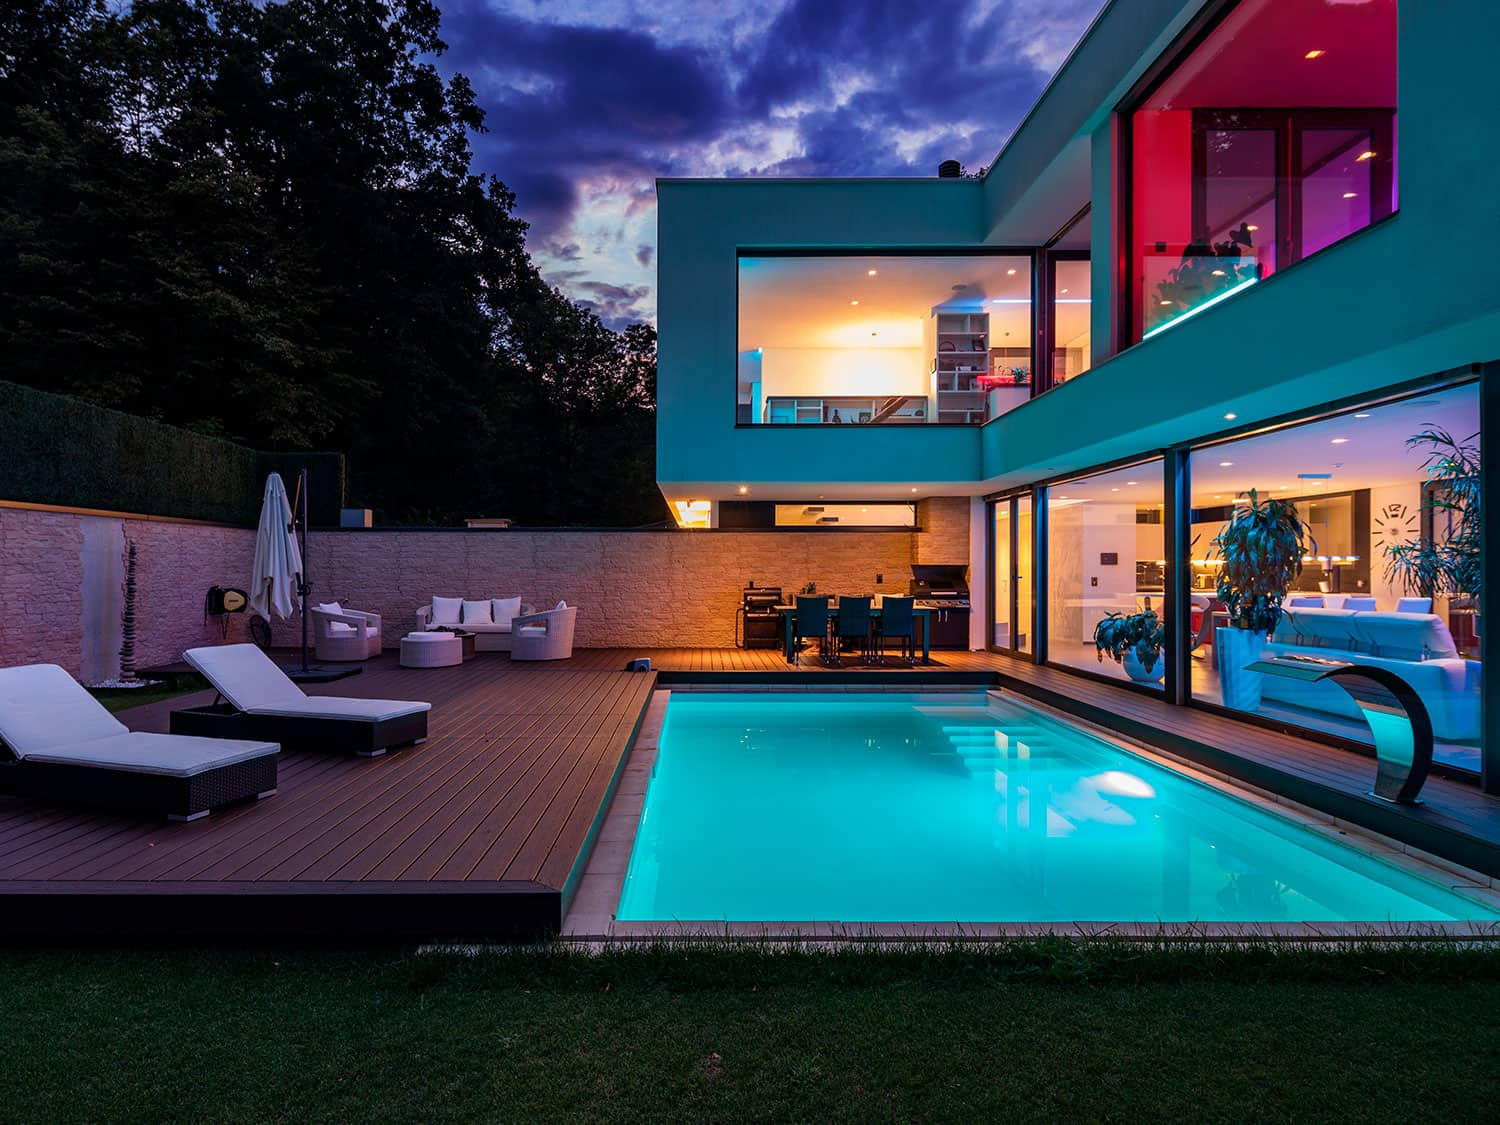 A ground-based shipping container swimming pool set against the backdrop of a container home at night